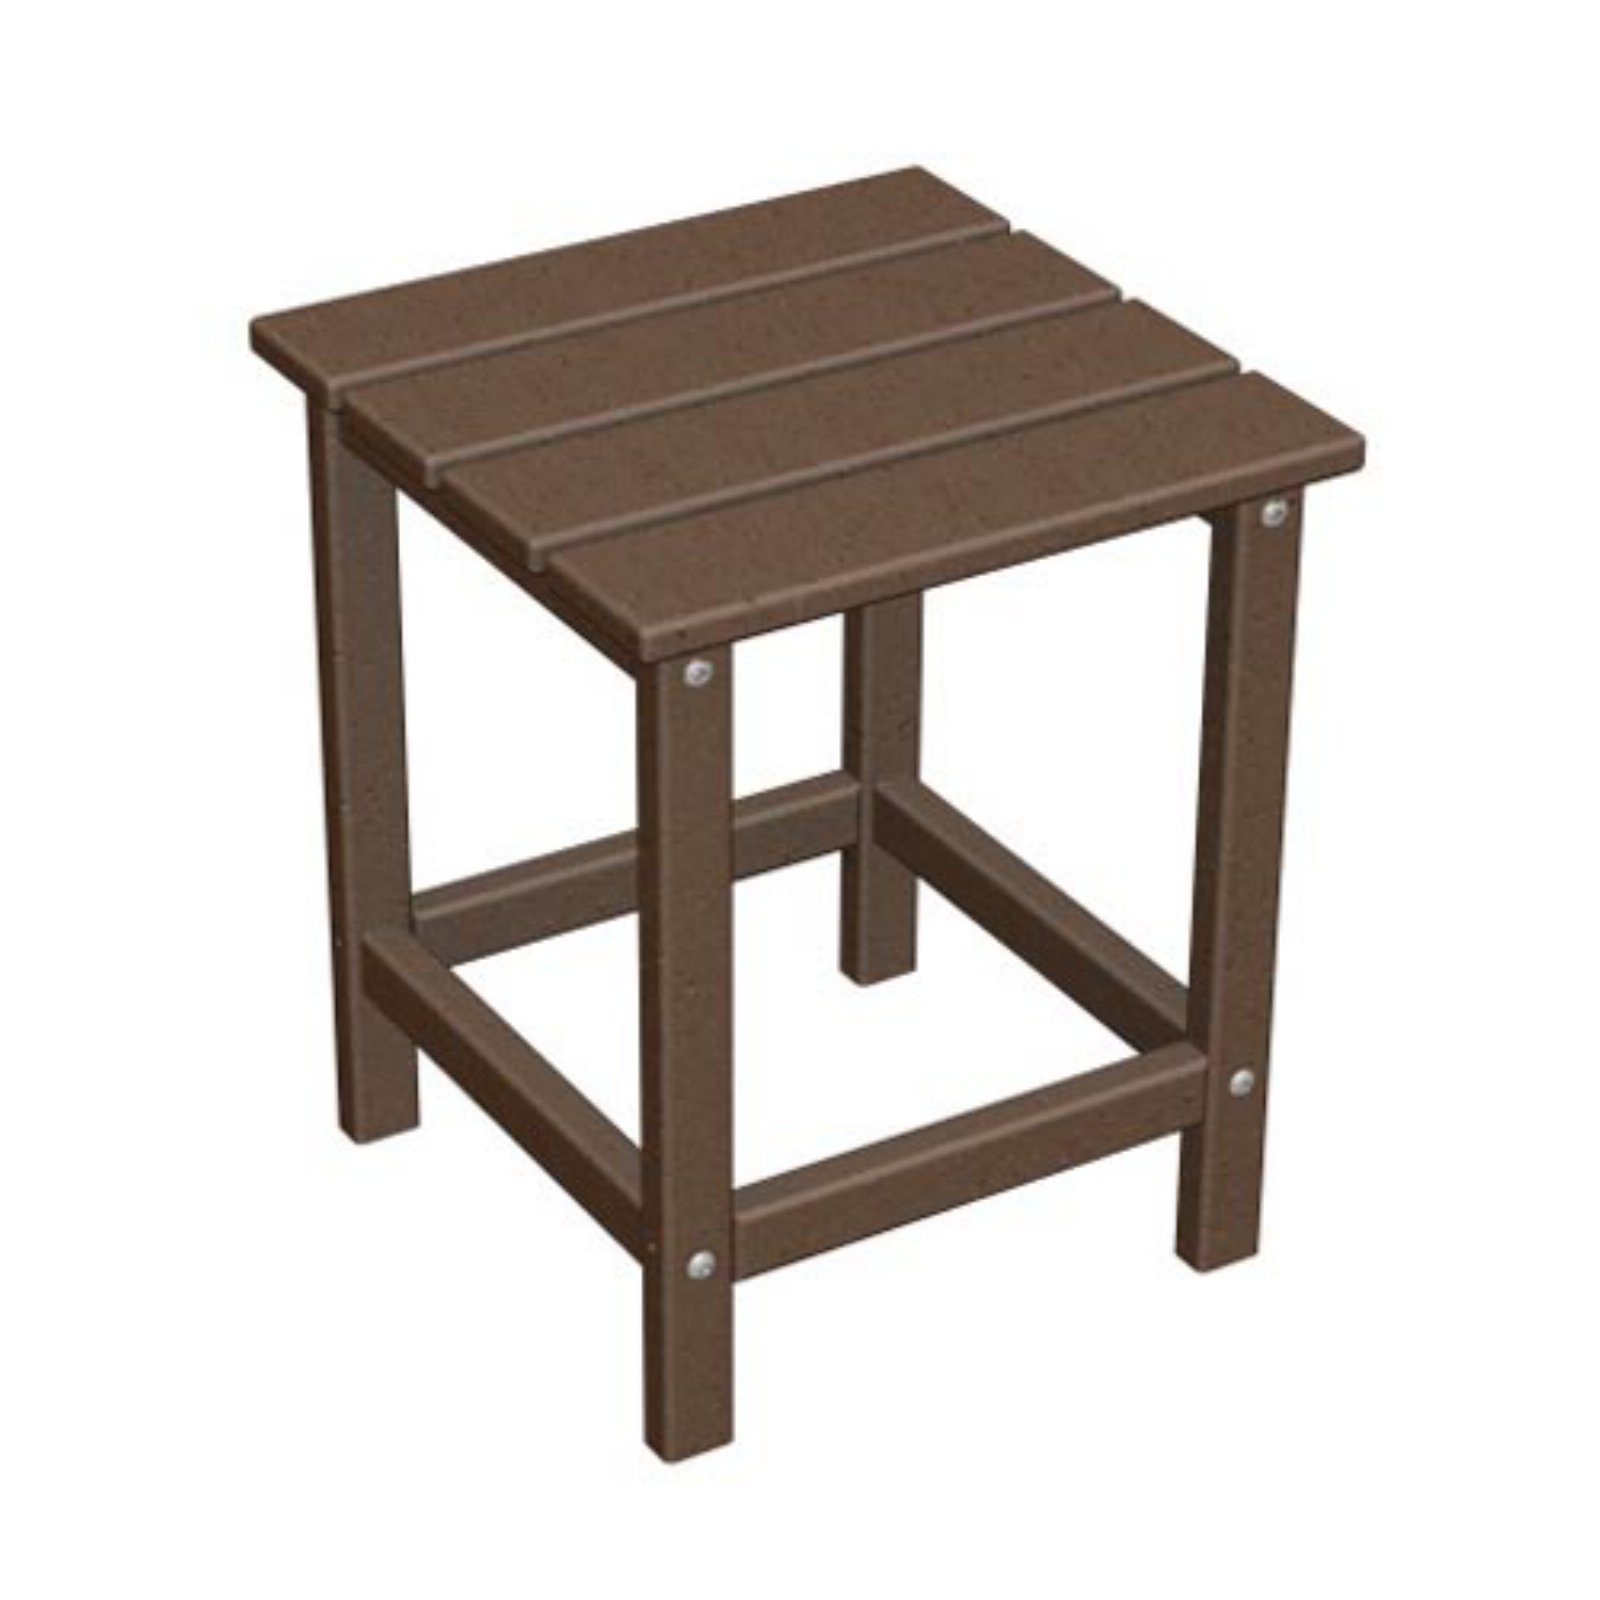 Polywood Reg Long Island Recycled Plastic 18h In Outdoor Side Table